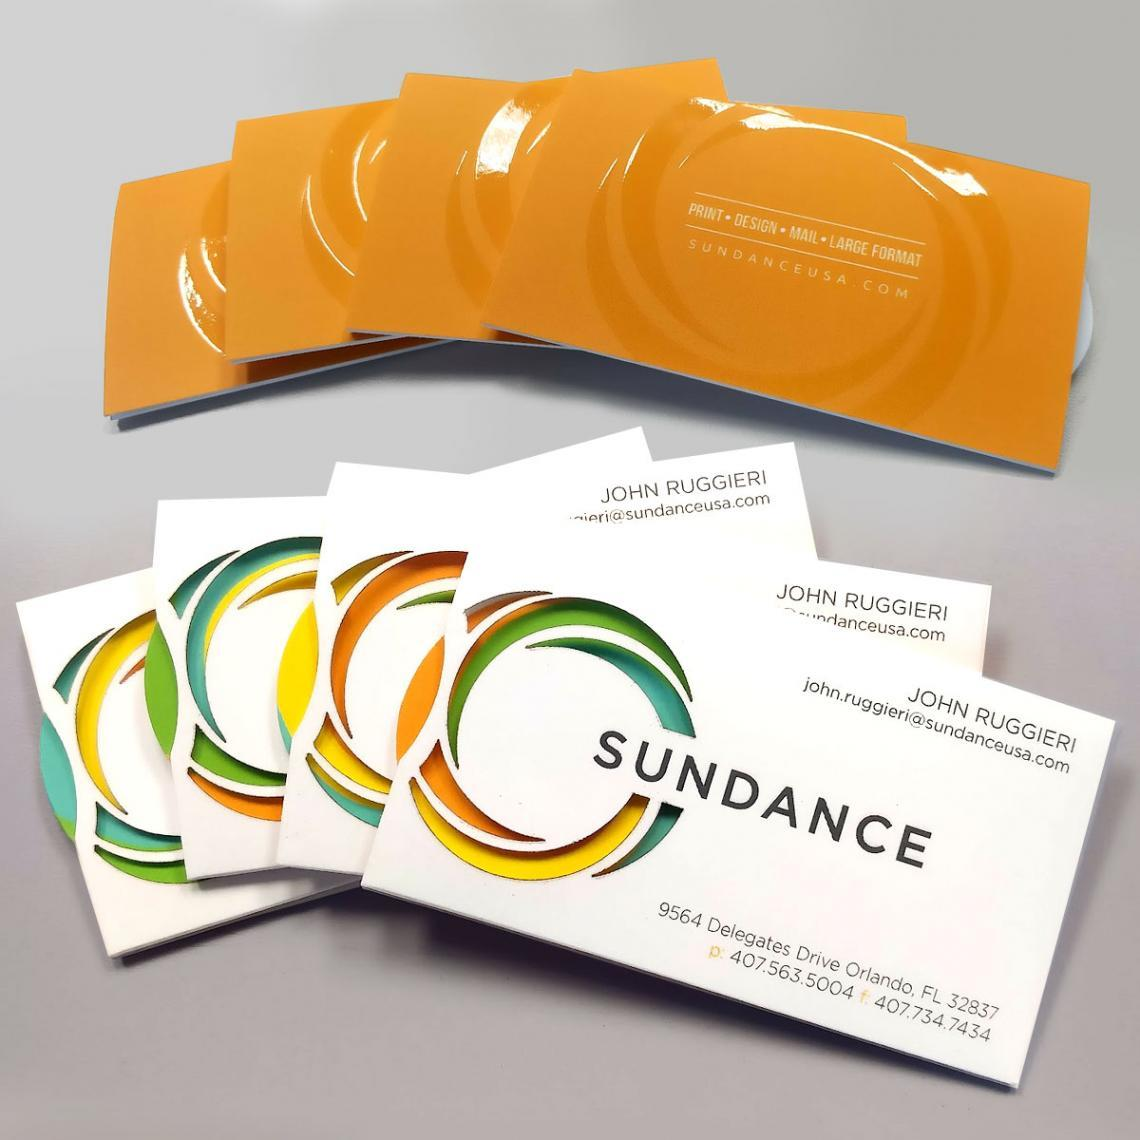 Video sundances spinning business card on 60 second fold reheart